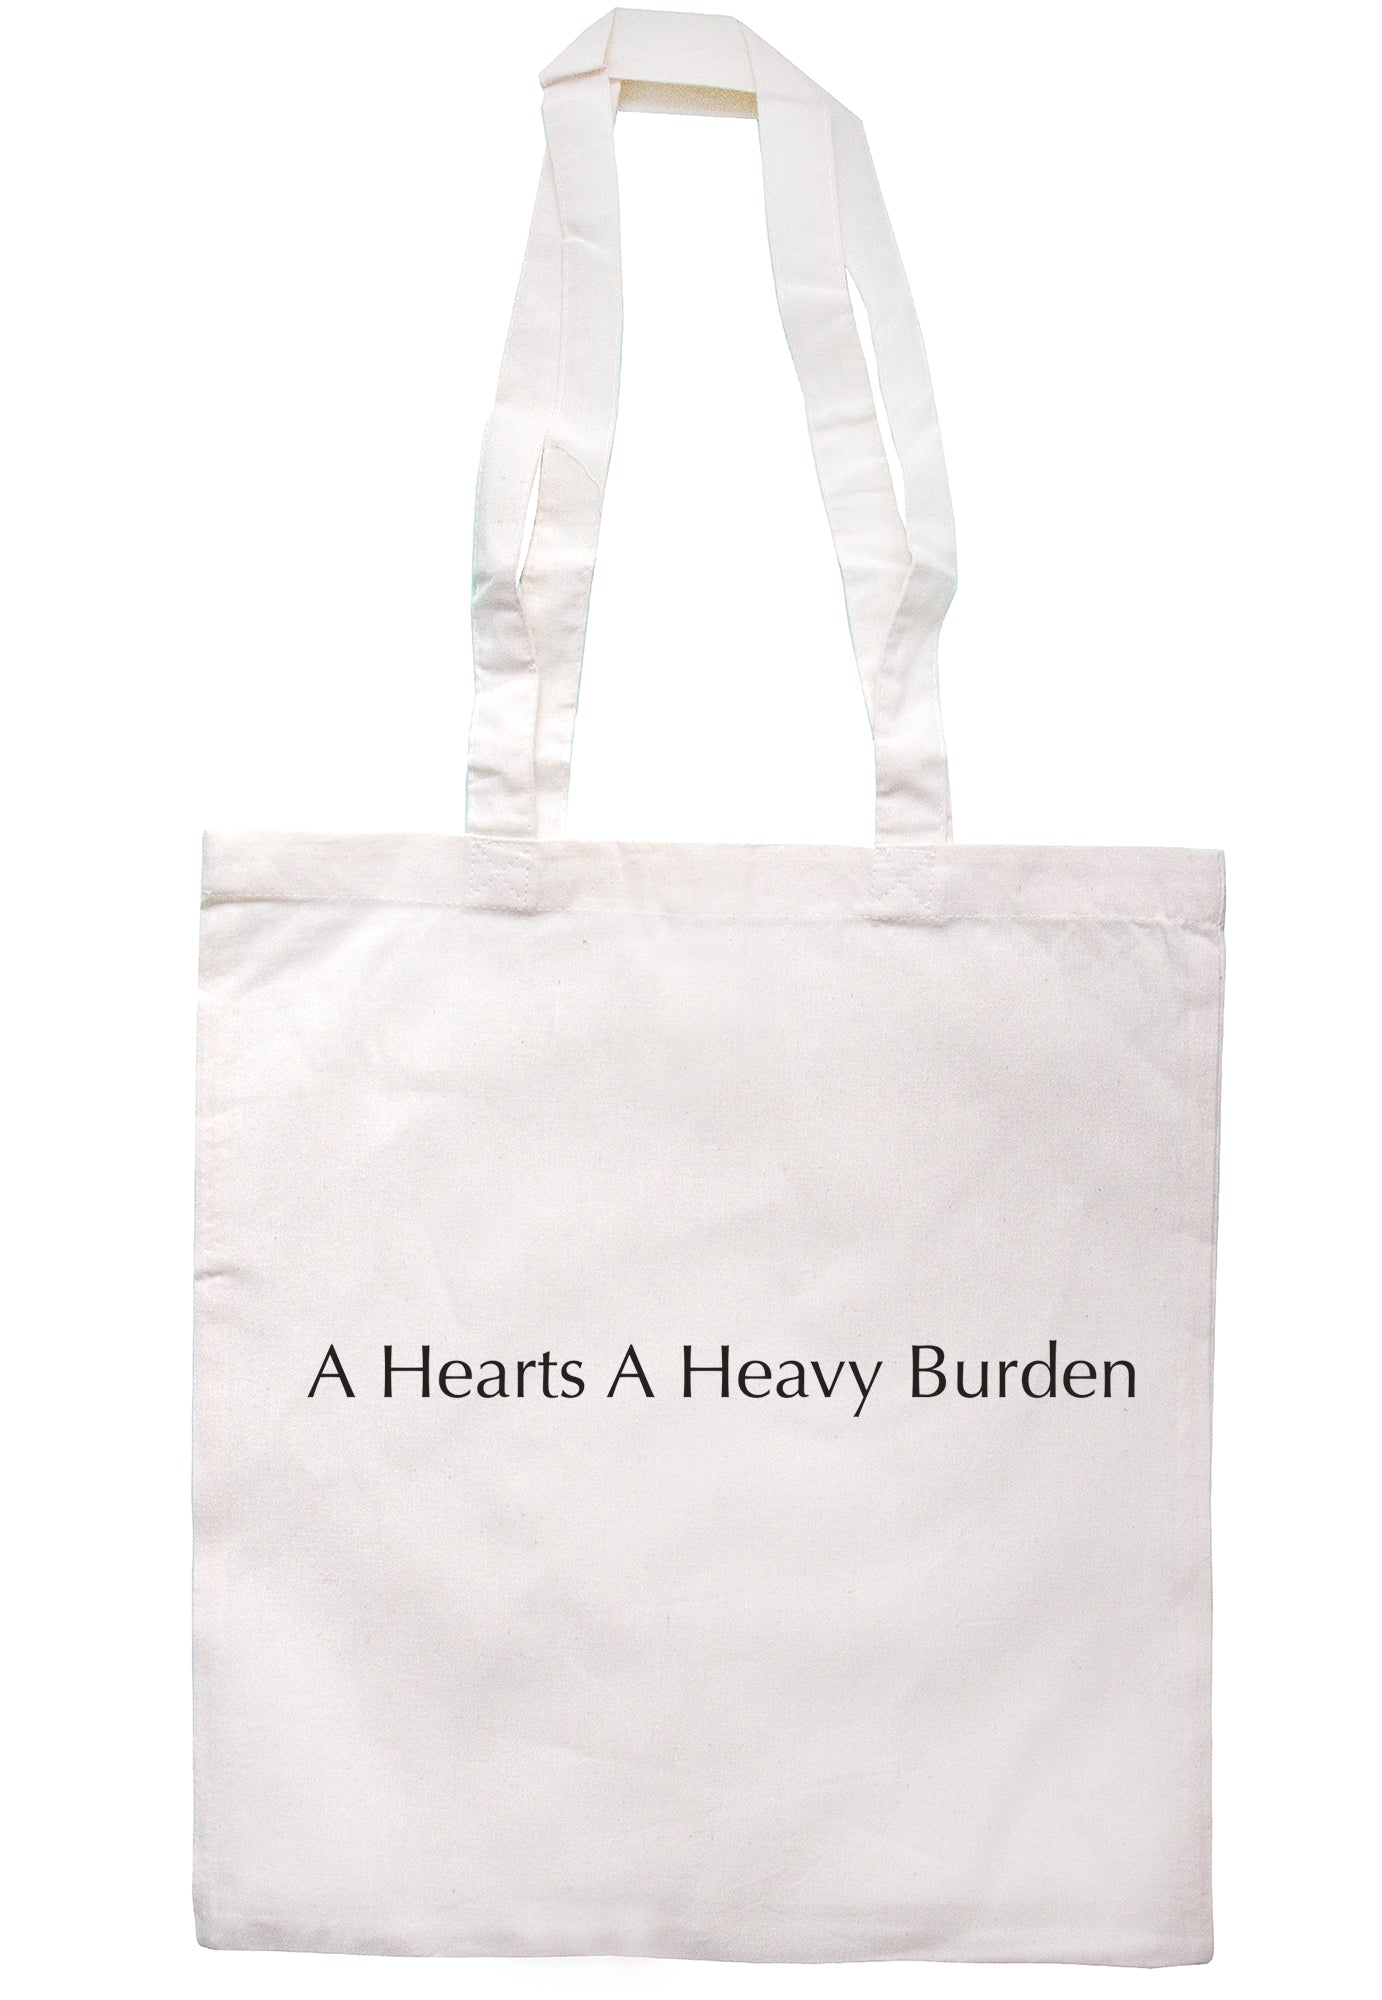 A Hearts A Heavy Burden Tote Bag S0637 - Illustrated Identity Ltd.